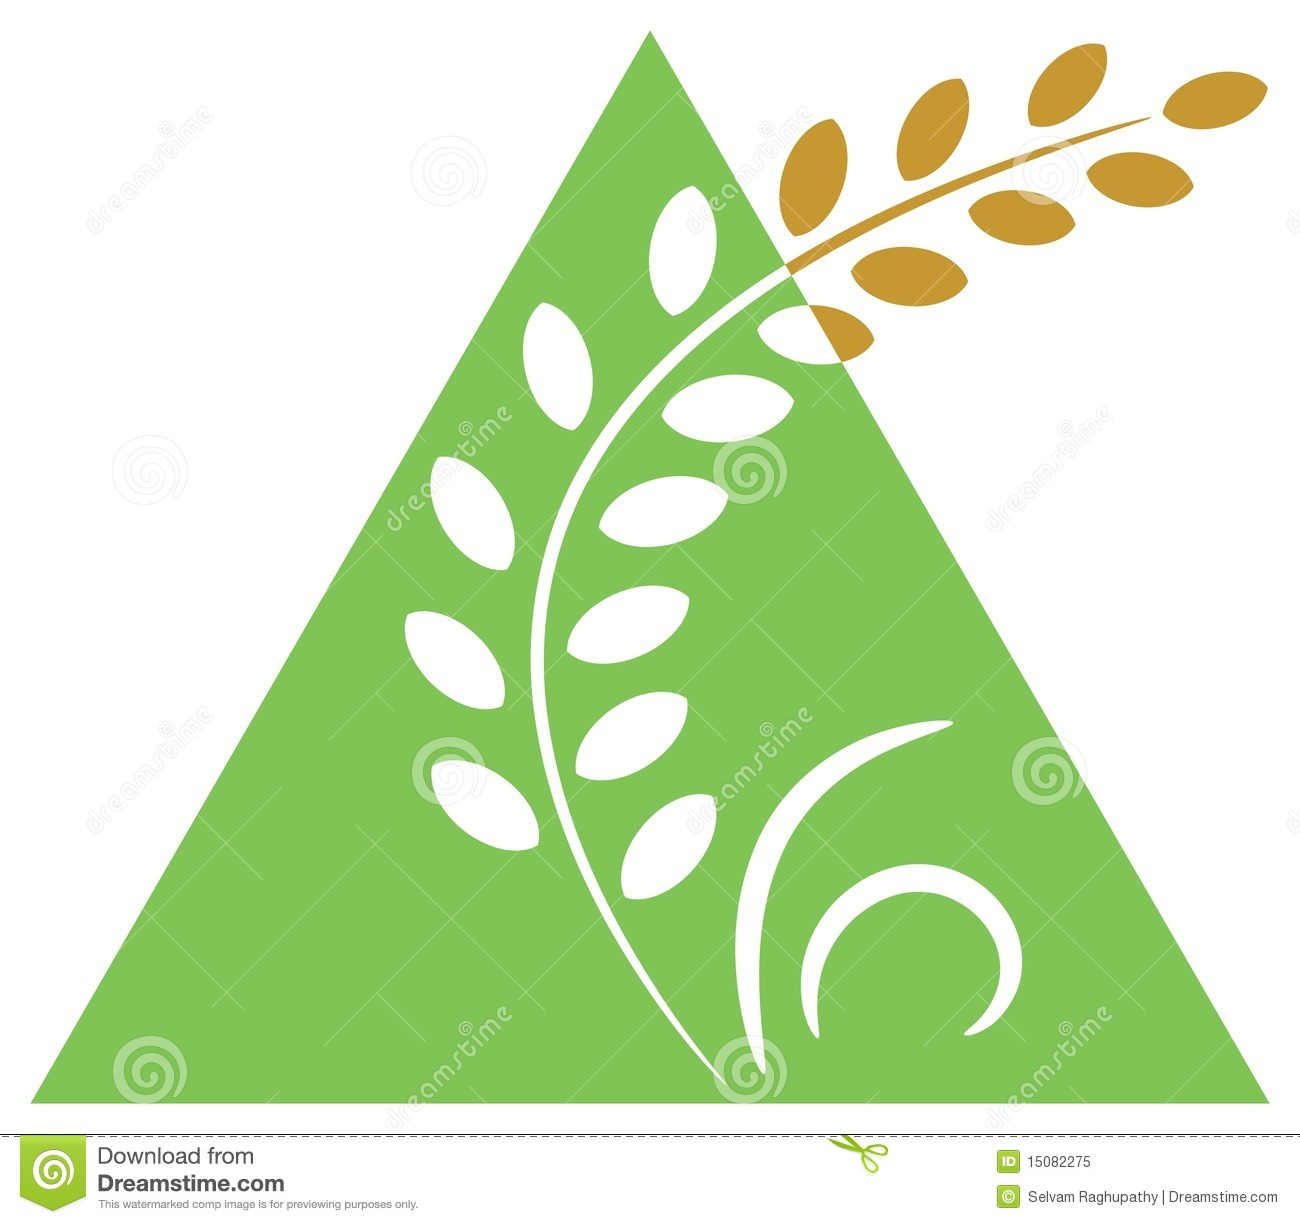 Agriculture Clip Art : Agriculture logo stock vector illustration of mature